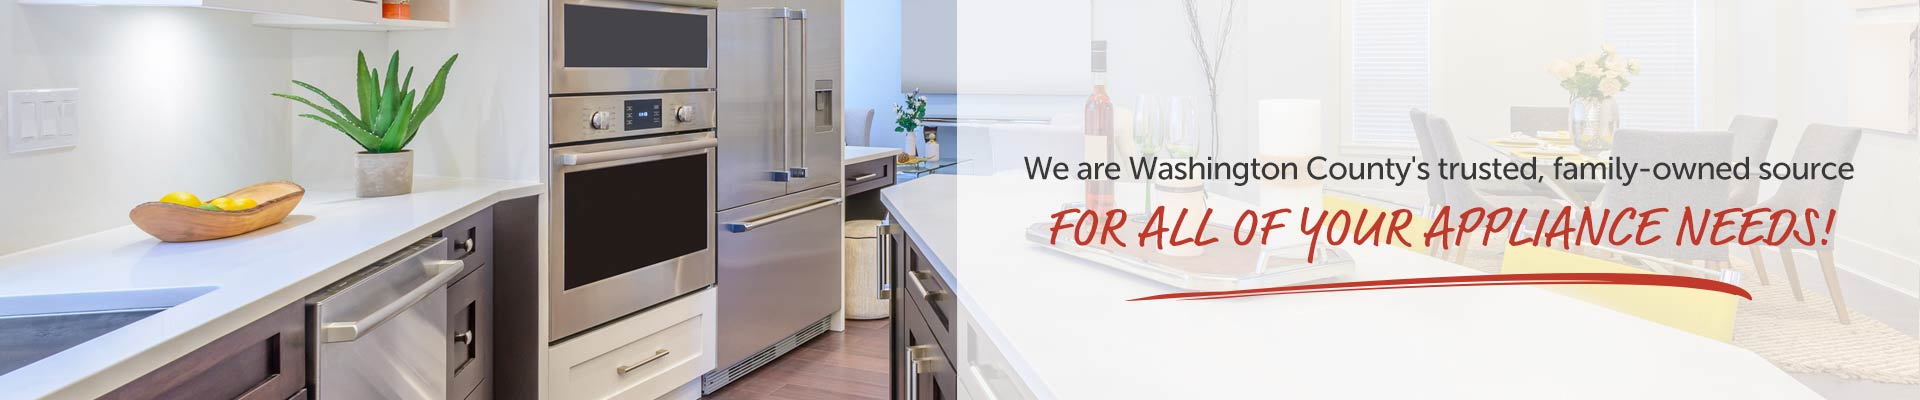 Used Appliances in Washington County, AR | Appliance Store